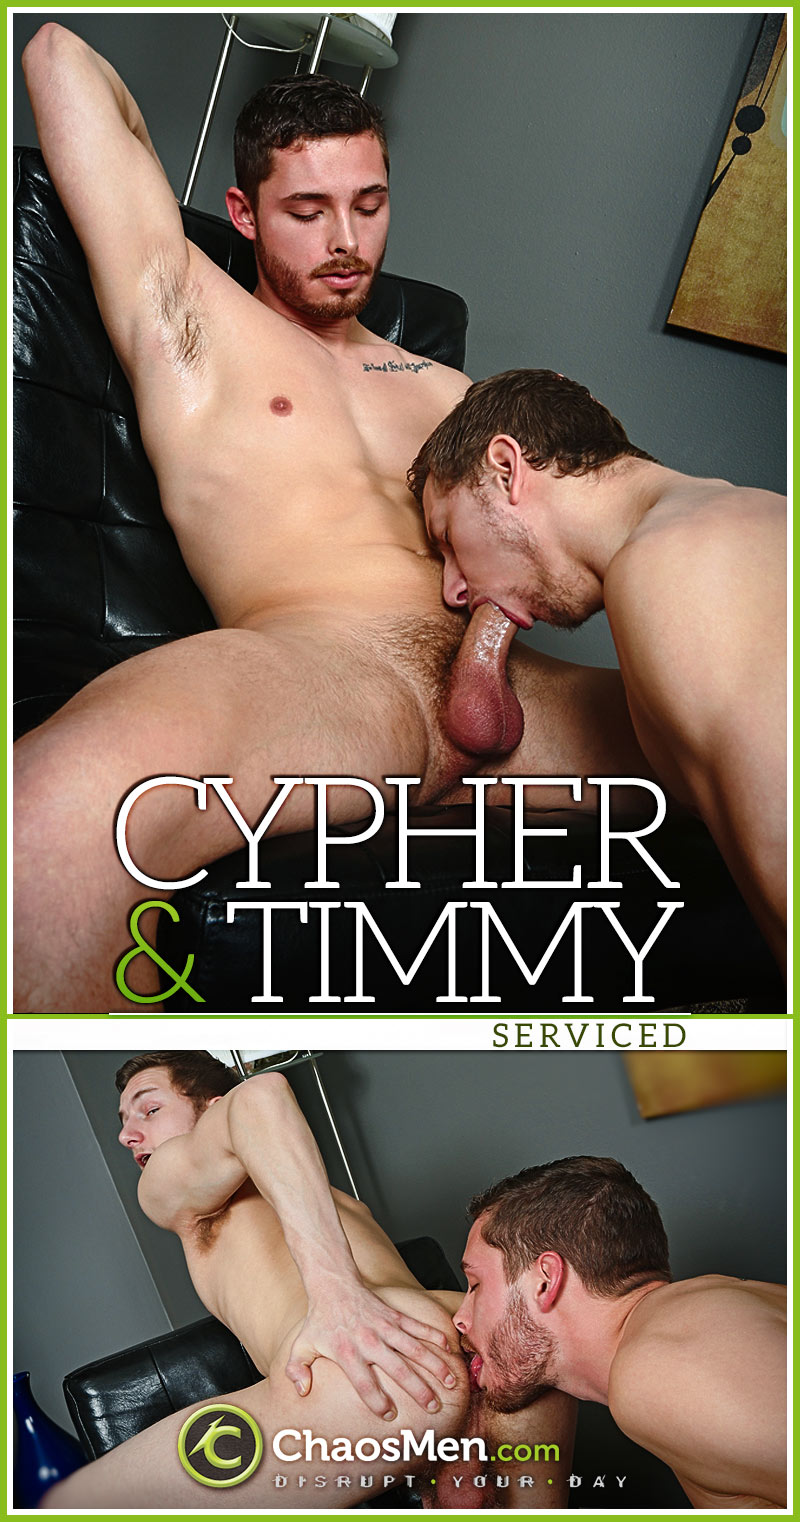 Cypher & Timmy (Serviced) at ChaosMen